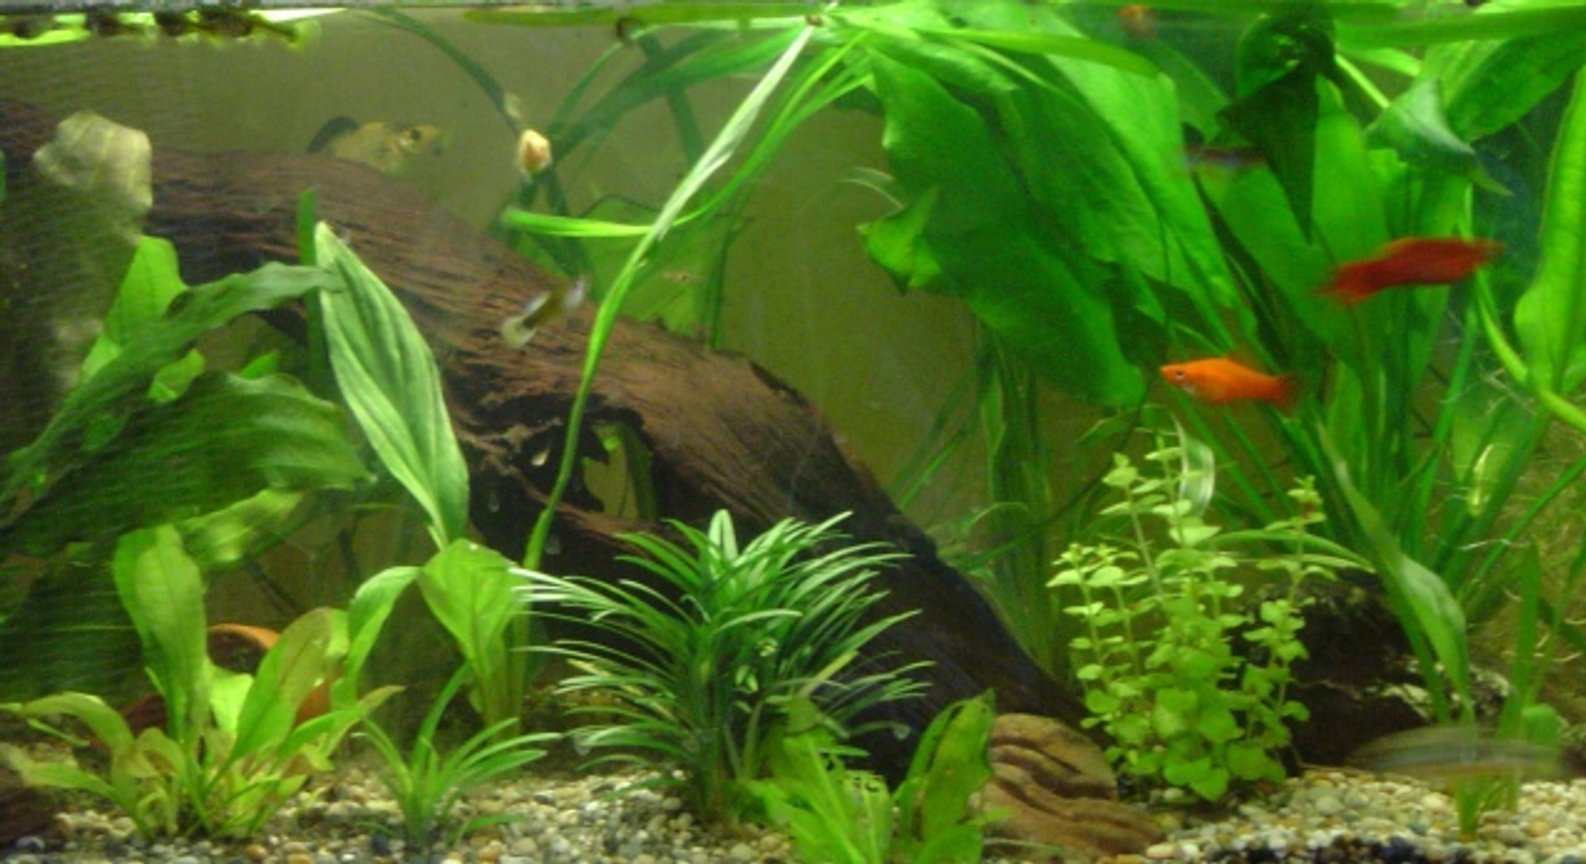 40 gallons planted tank (mostly live plants and fish) - comunity tank, well planted with a variety of different freshwater fish